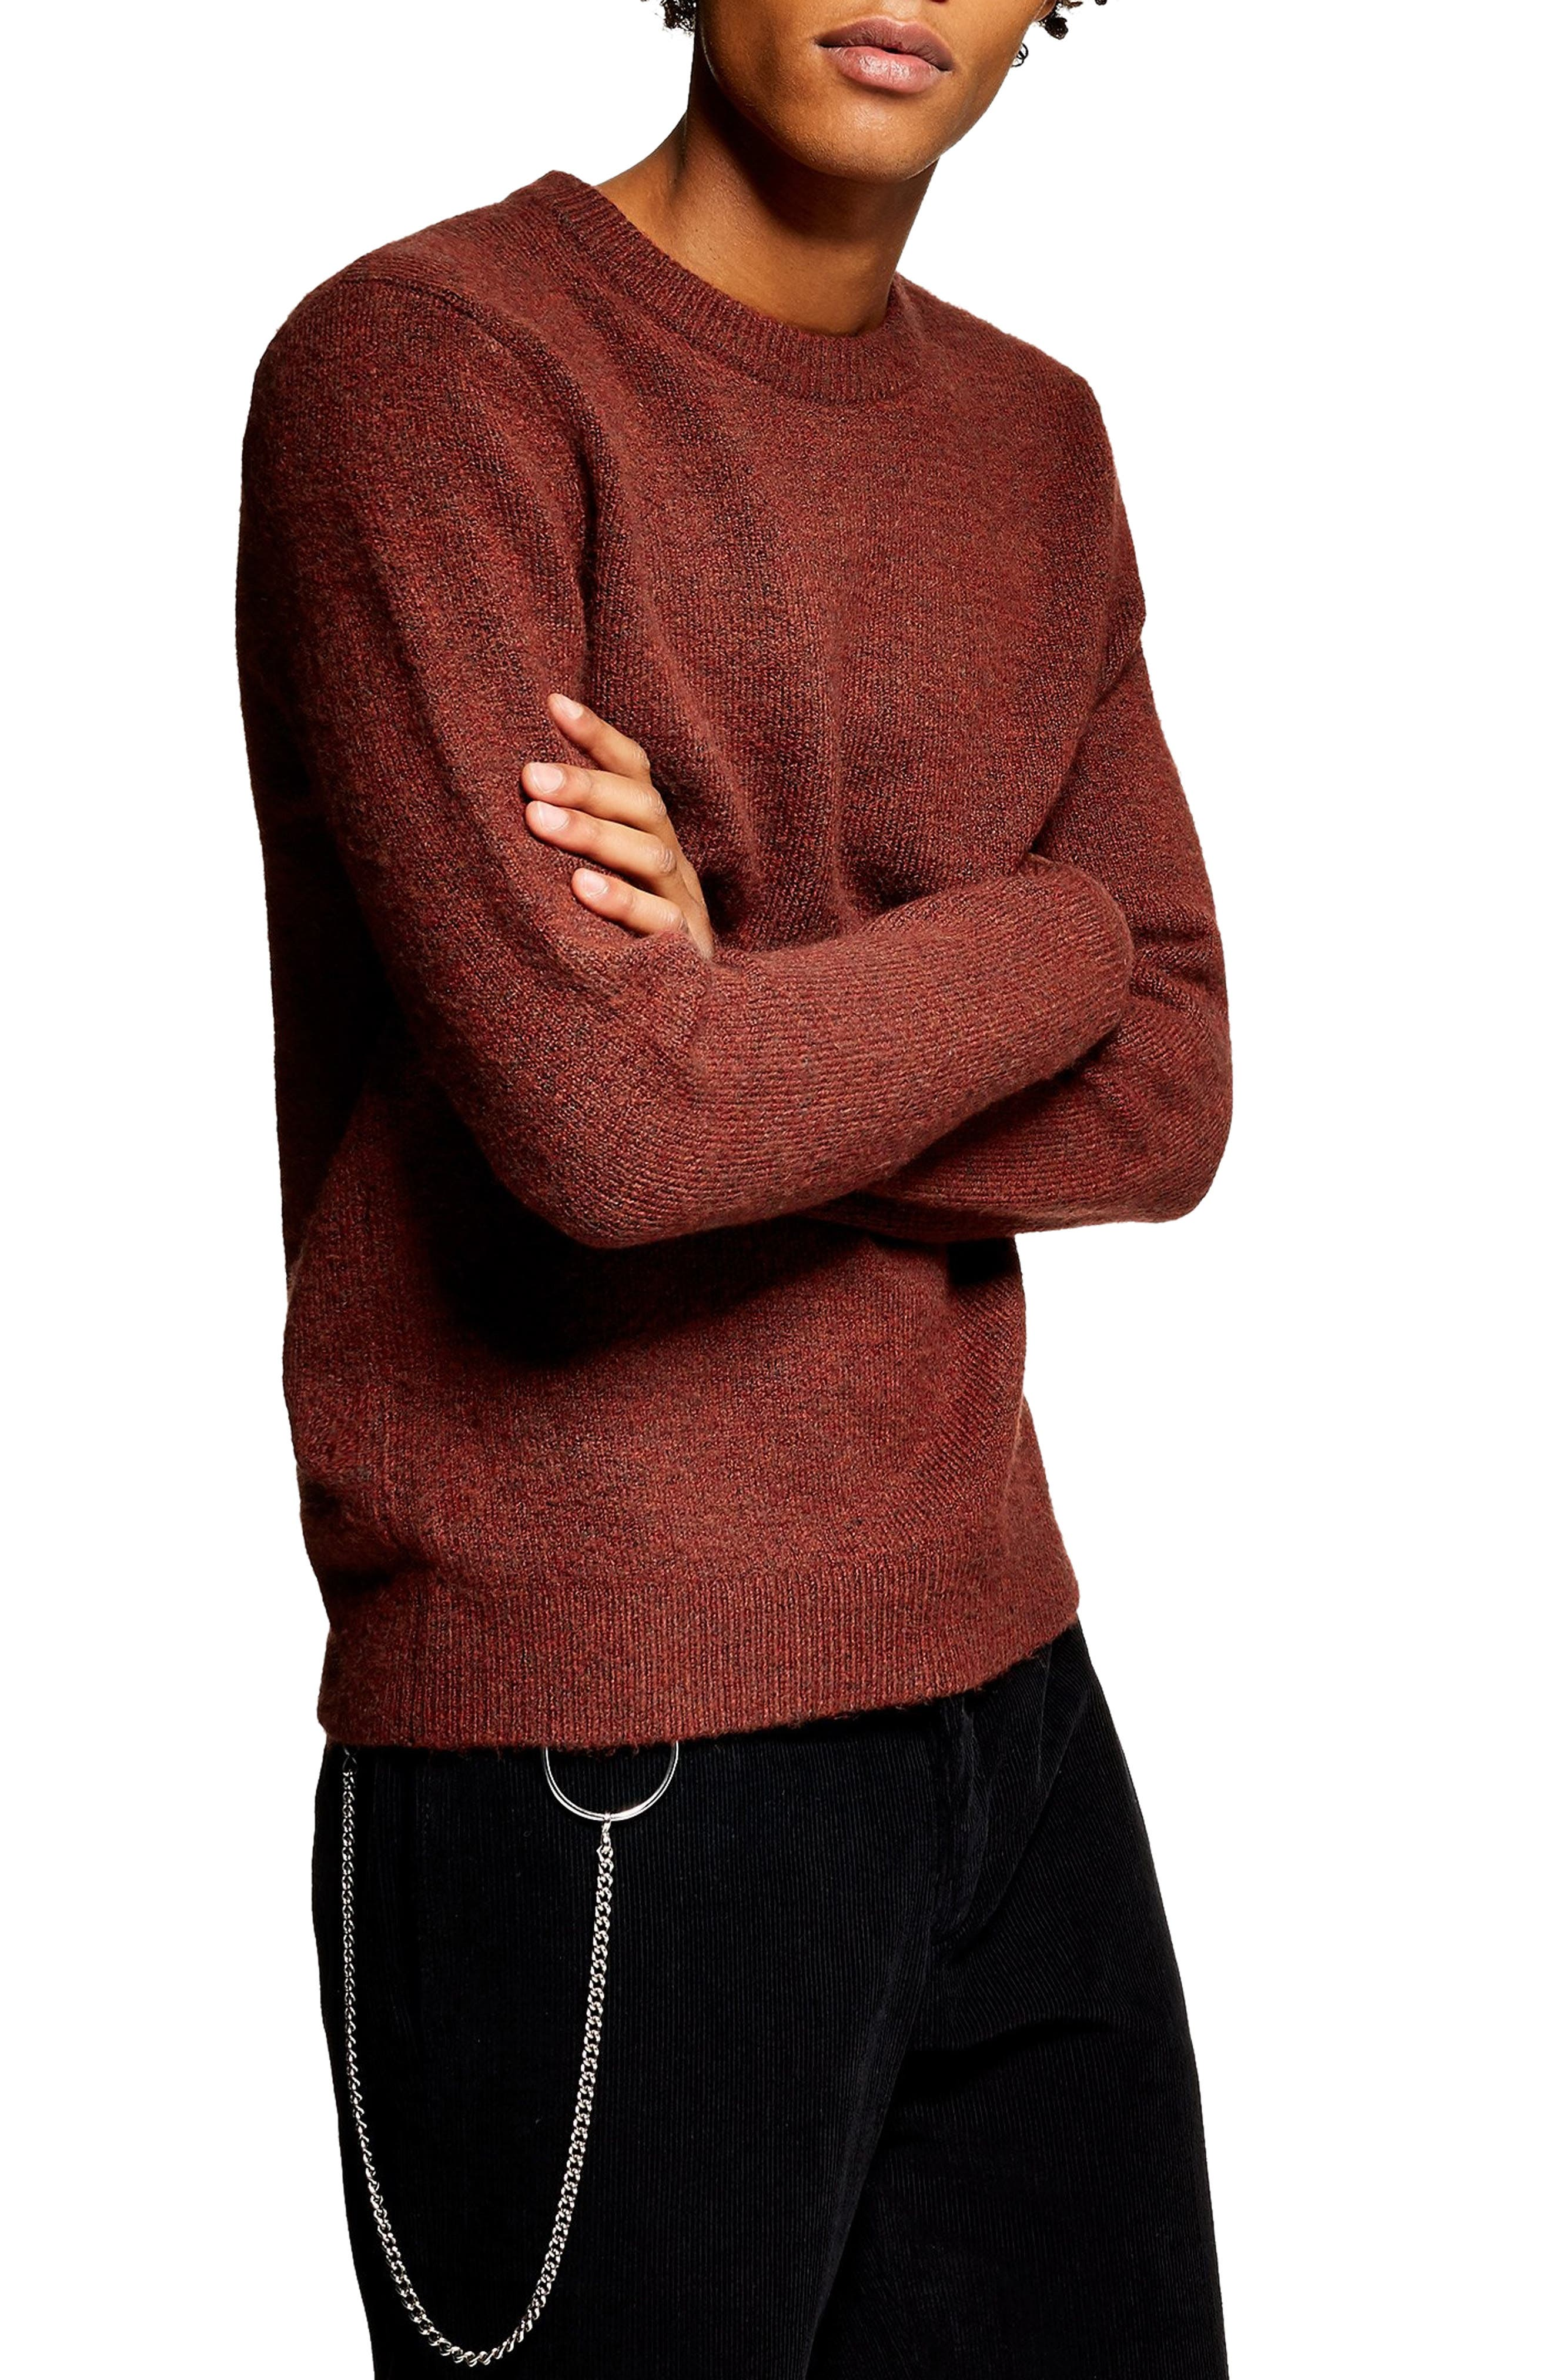 TOPMAN Harlow Classic Fit Sweater, Main, color, 200